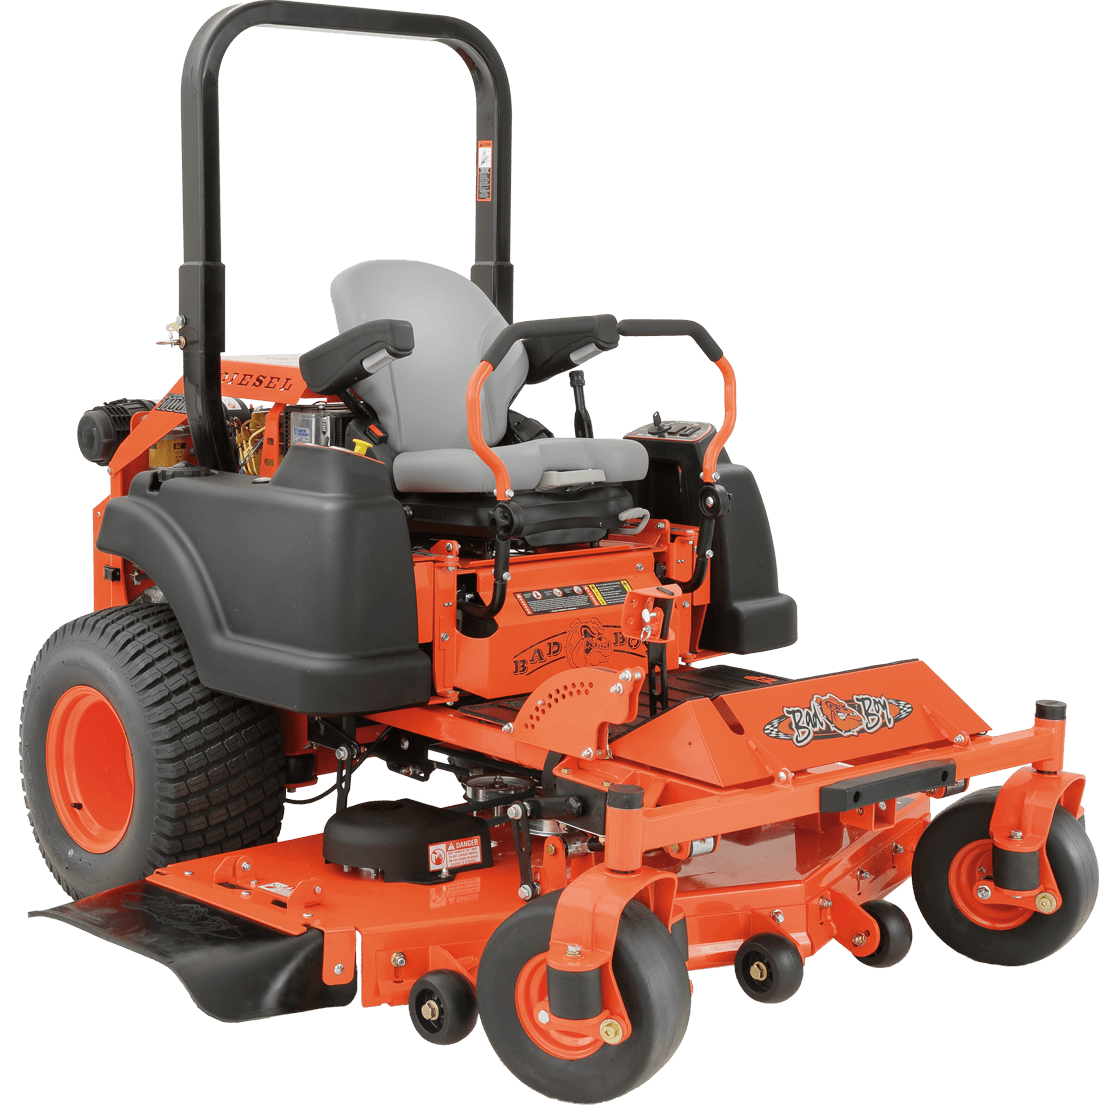 Bad Diesel Set Bad Boy Mower Compact Diesel Series